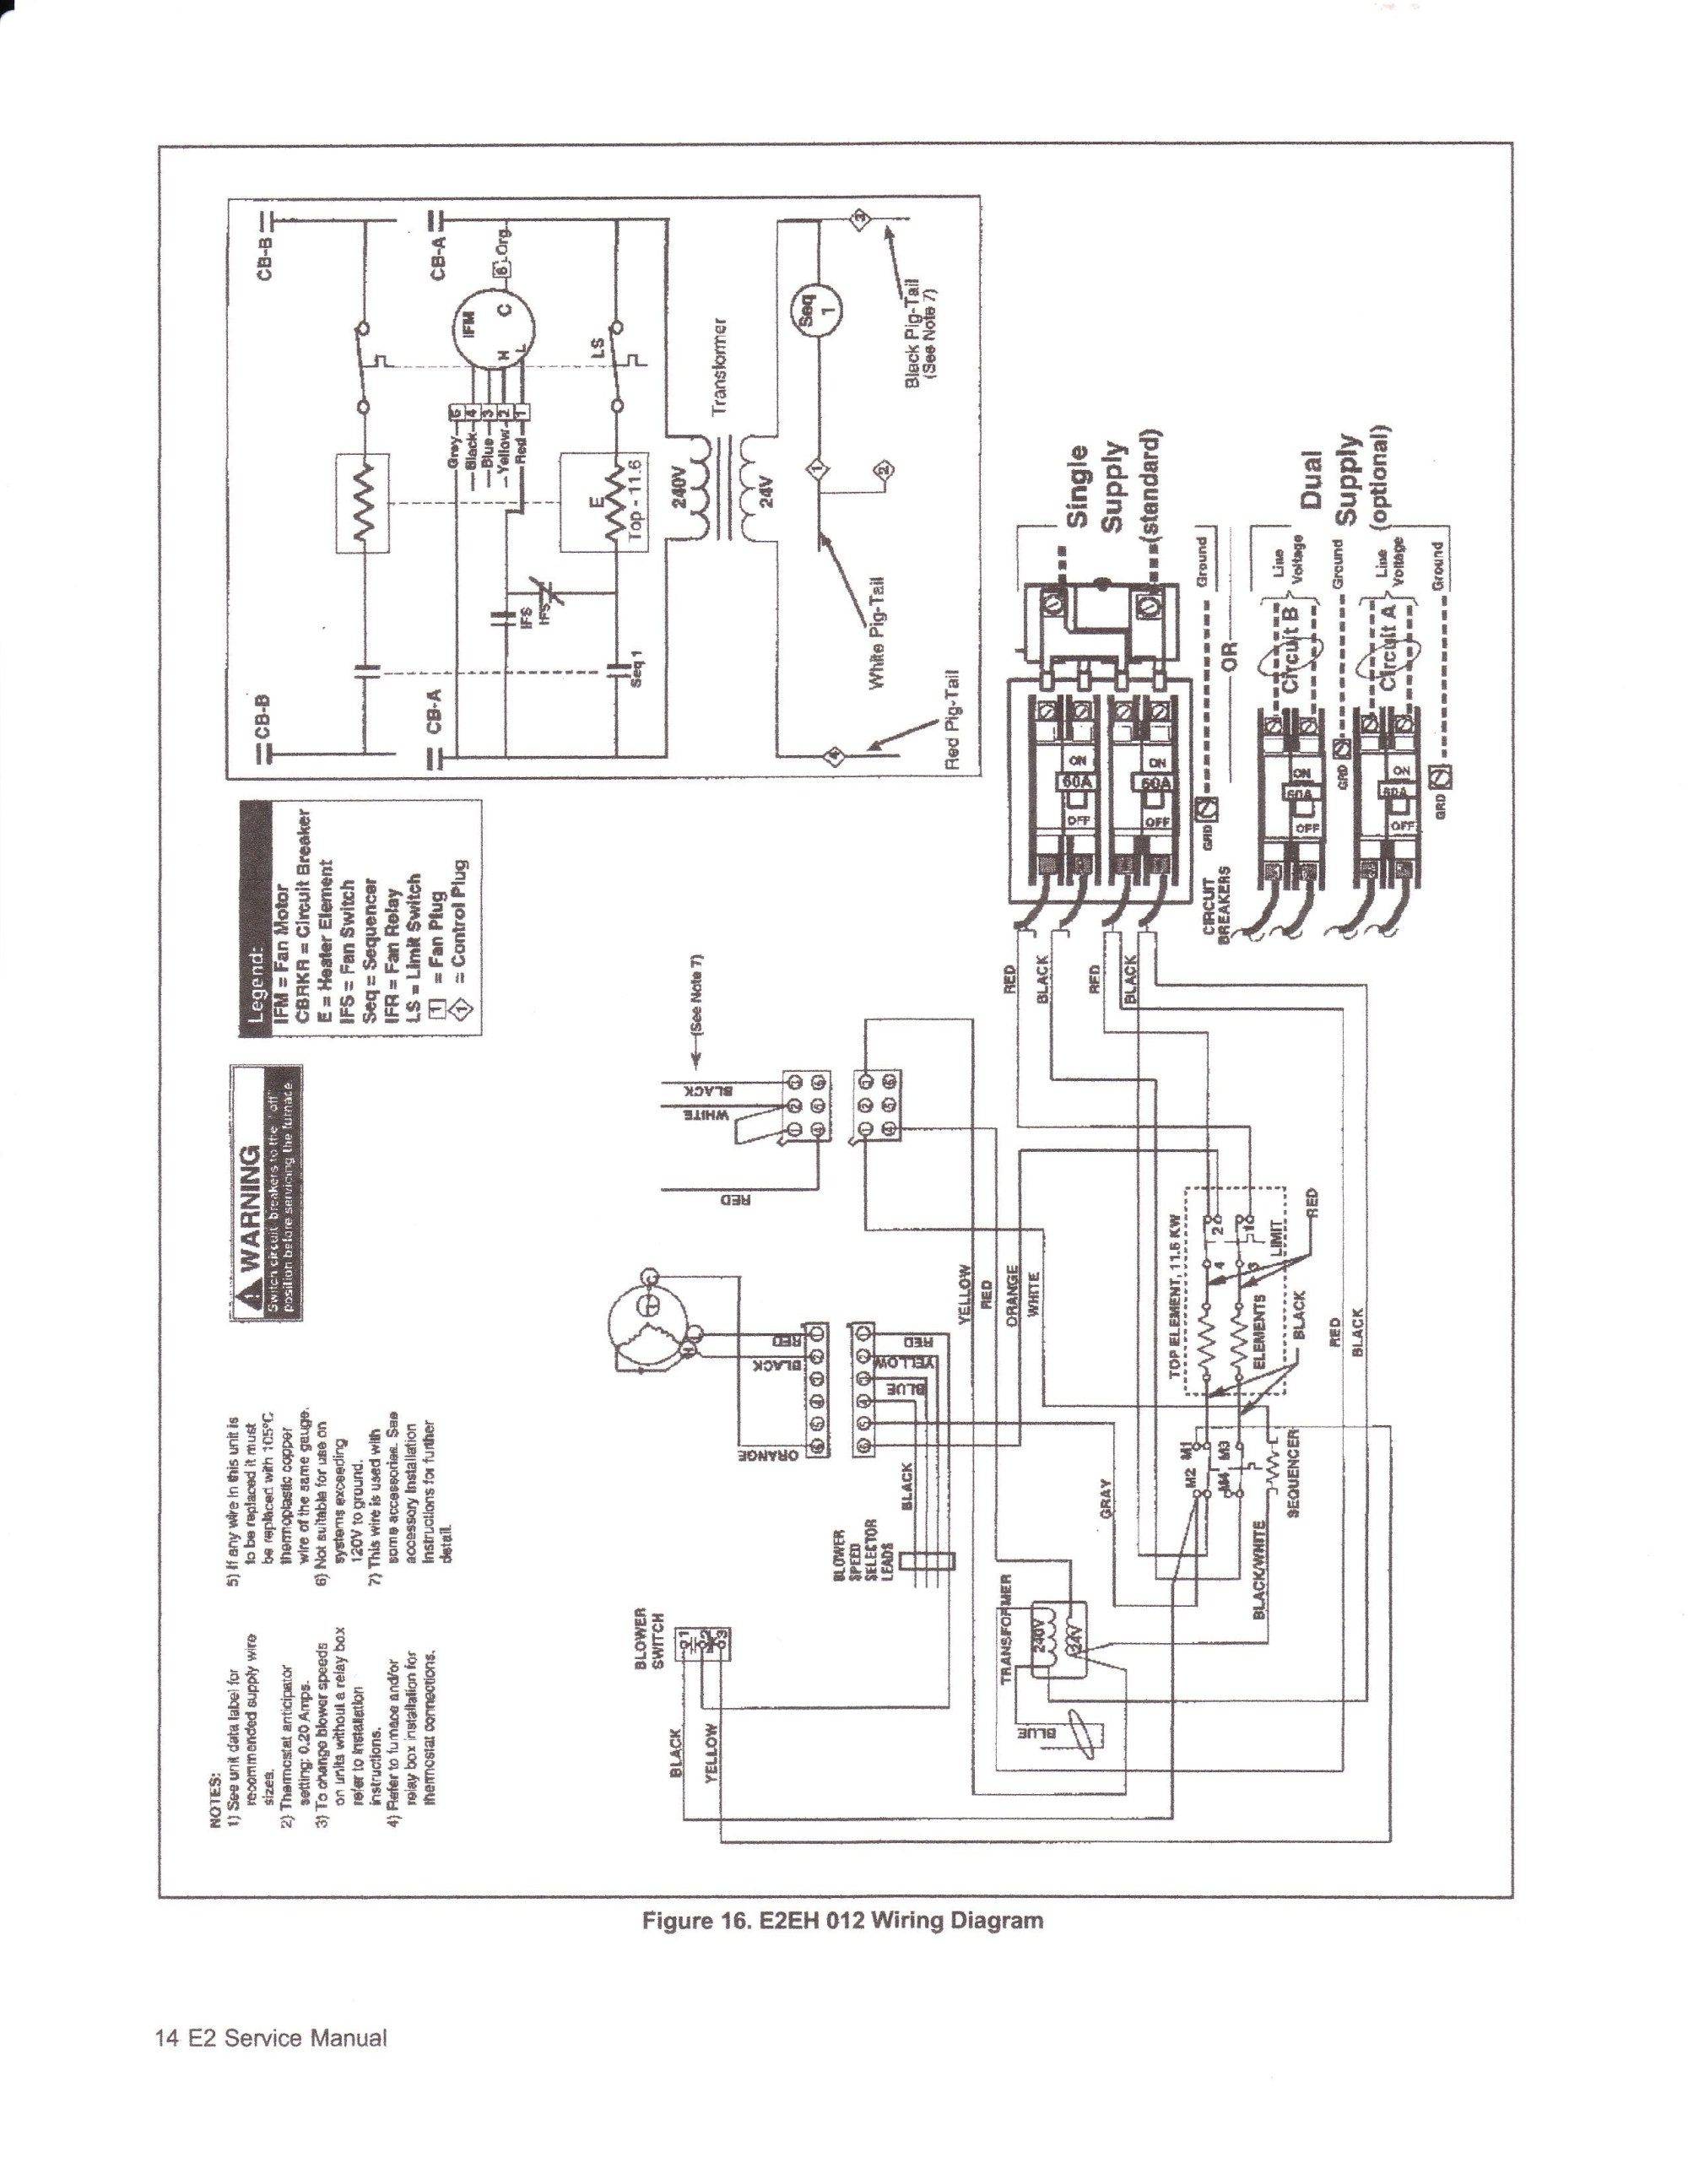 hight resolution of wiring diagram along with mobile home nordyne furnace wiring diagram rh sellfie co